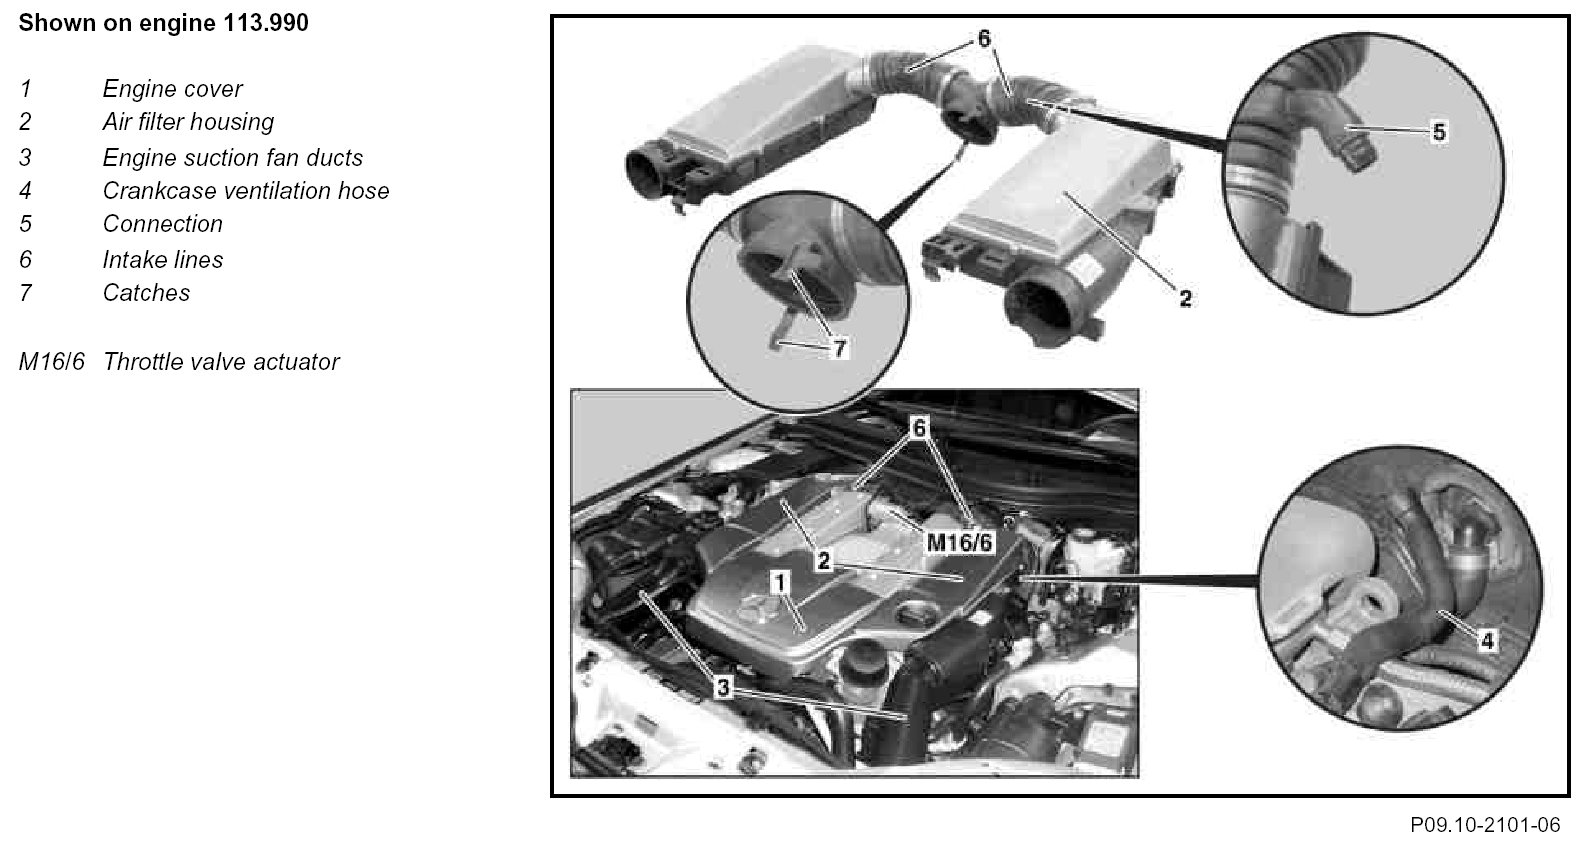 How can I successfully change the coolant on my car c320